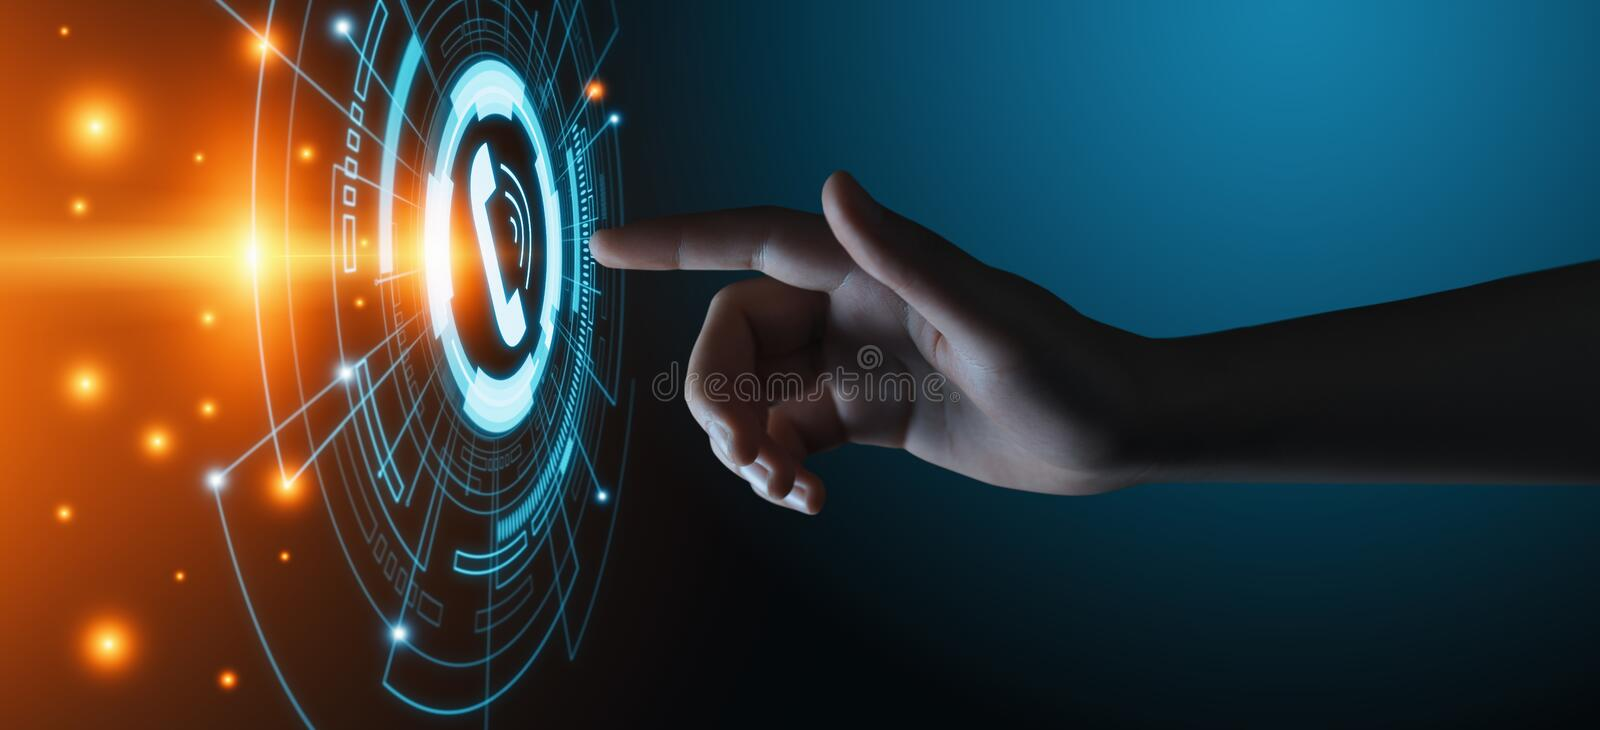 Call Now Business Communication Support Center Customer Service Technology Concept.  stock photo